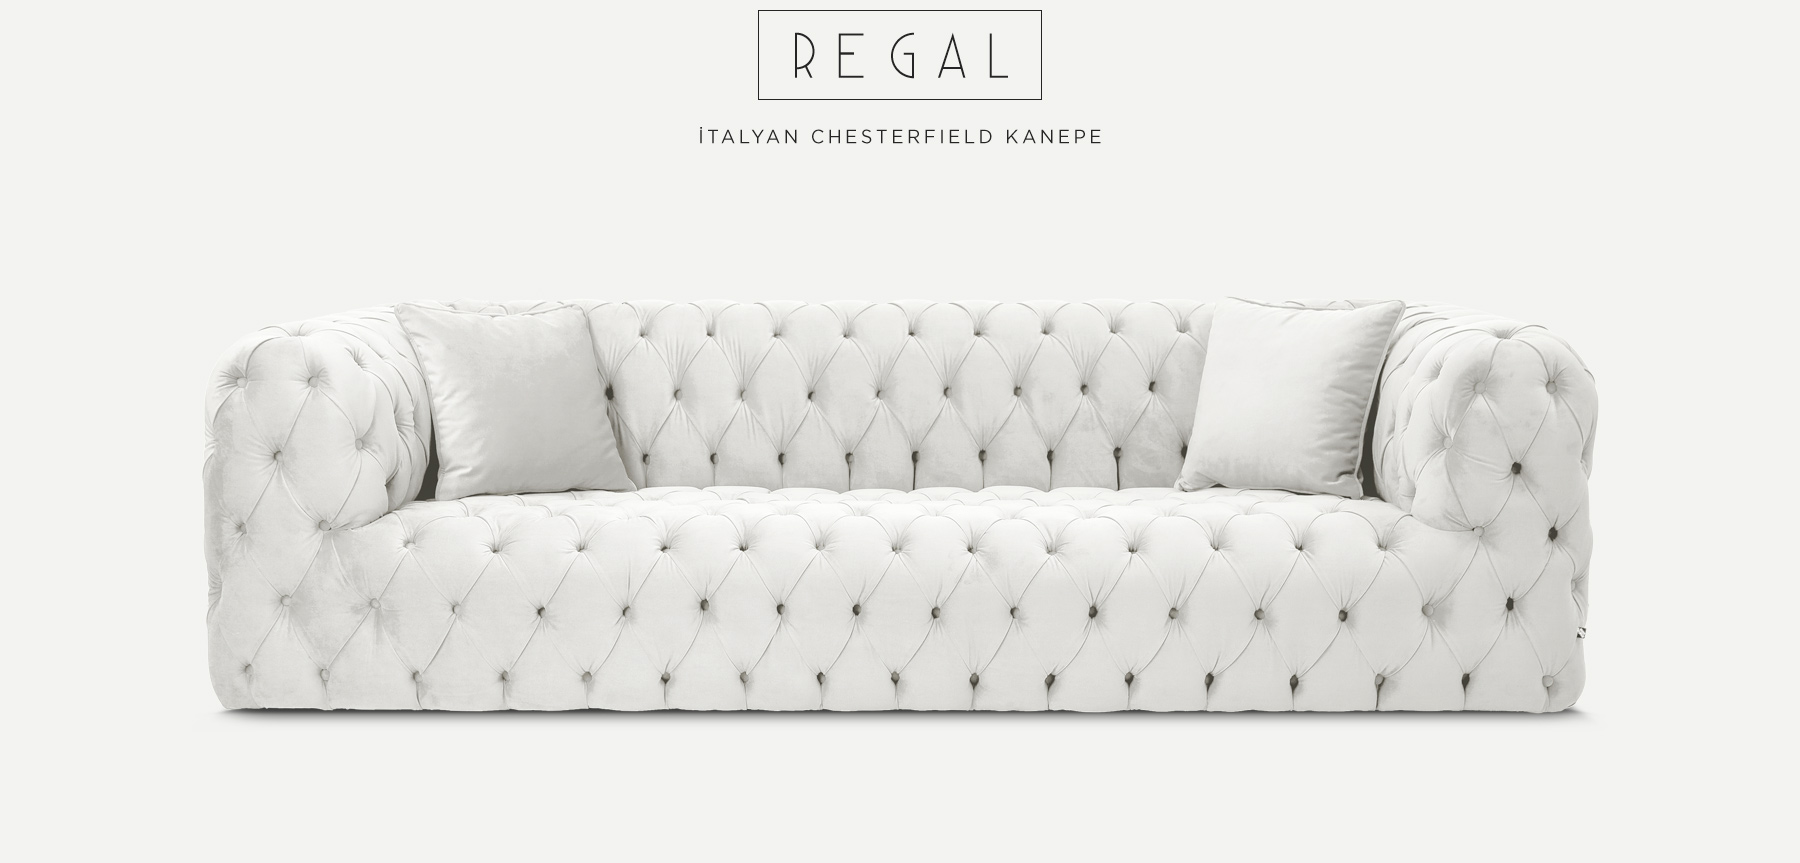 Regal Üçlü Beyaz İtalyan ChesterfIeld'in resmi